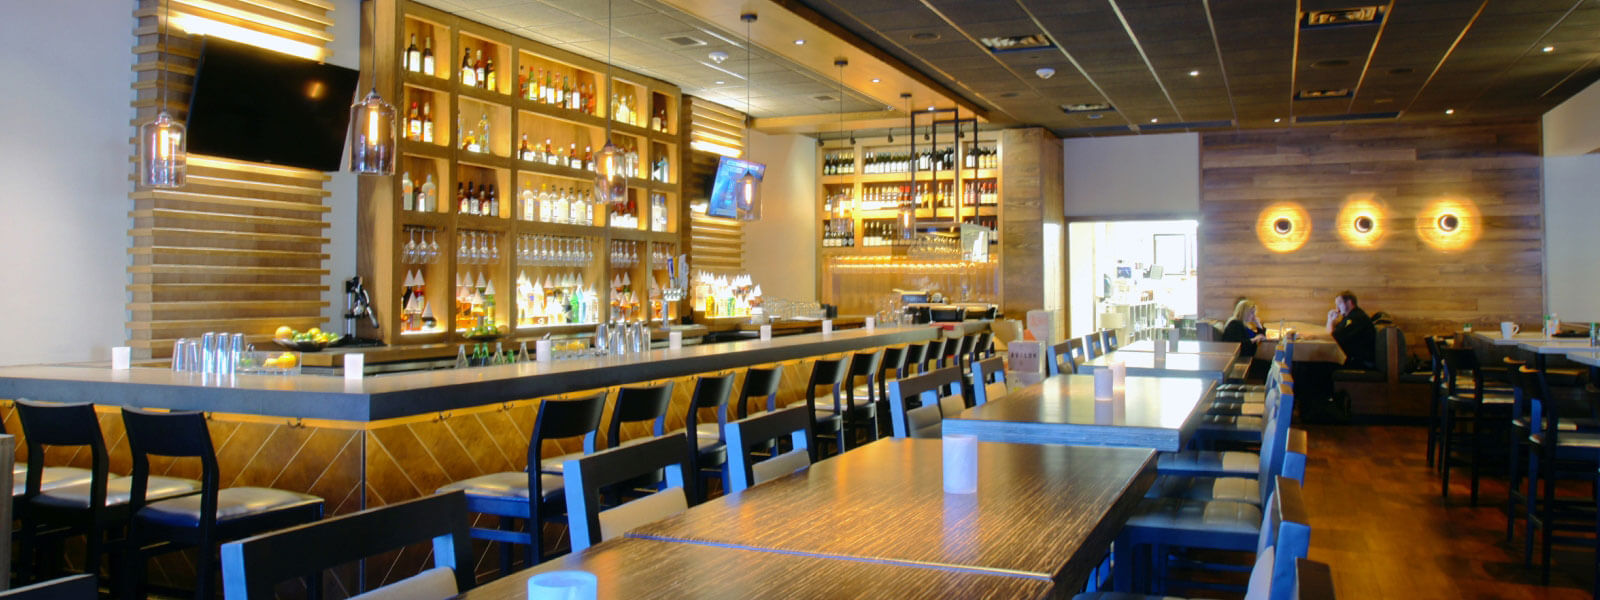 Restaurant Projects - Commercial Construction   Shingobee Builders